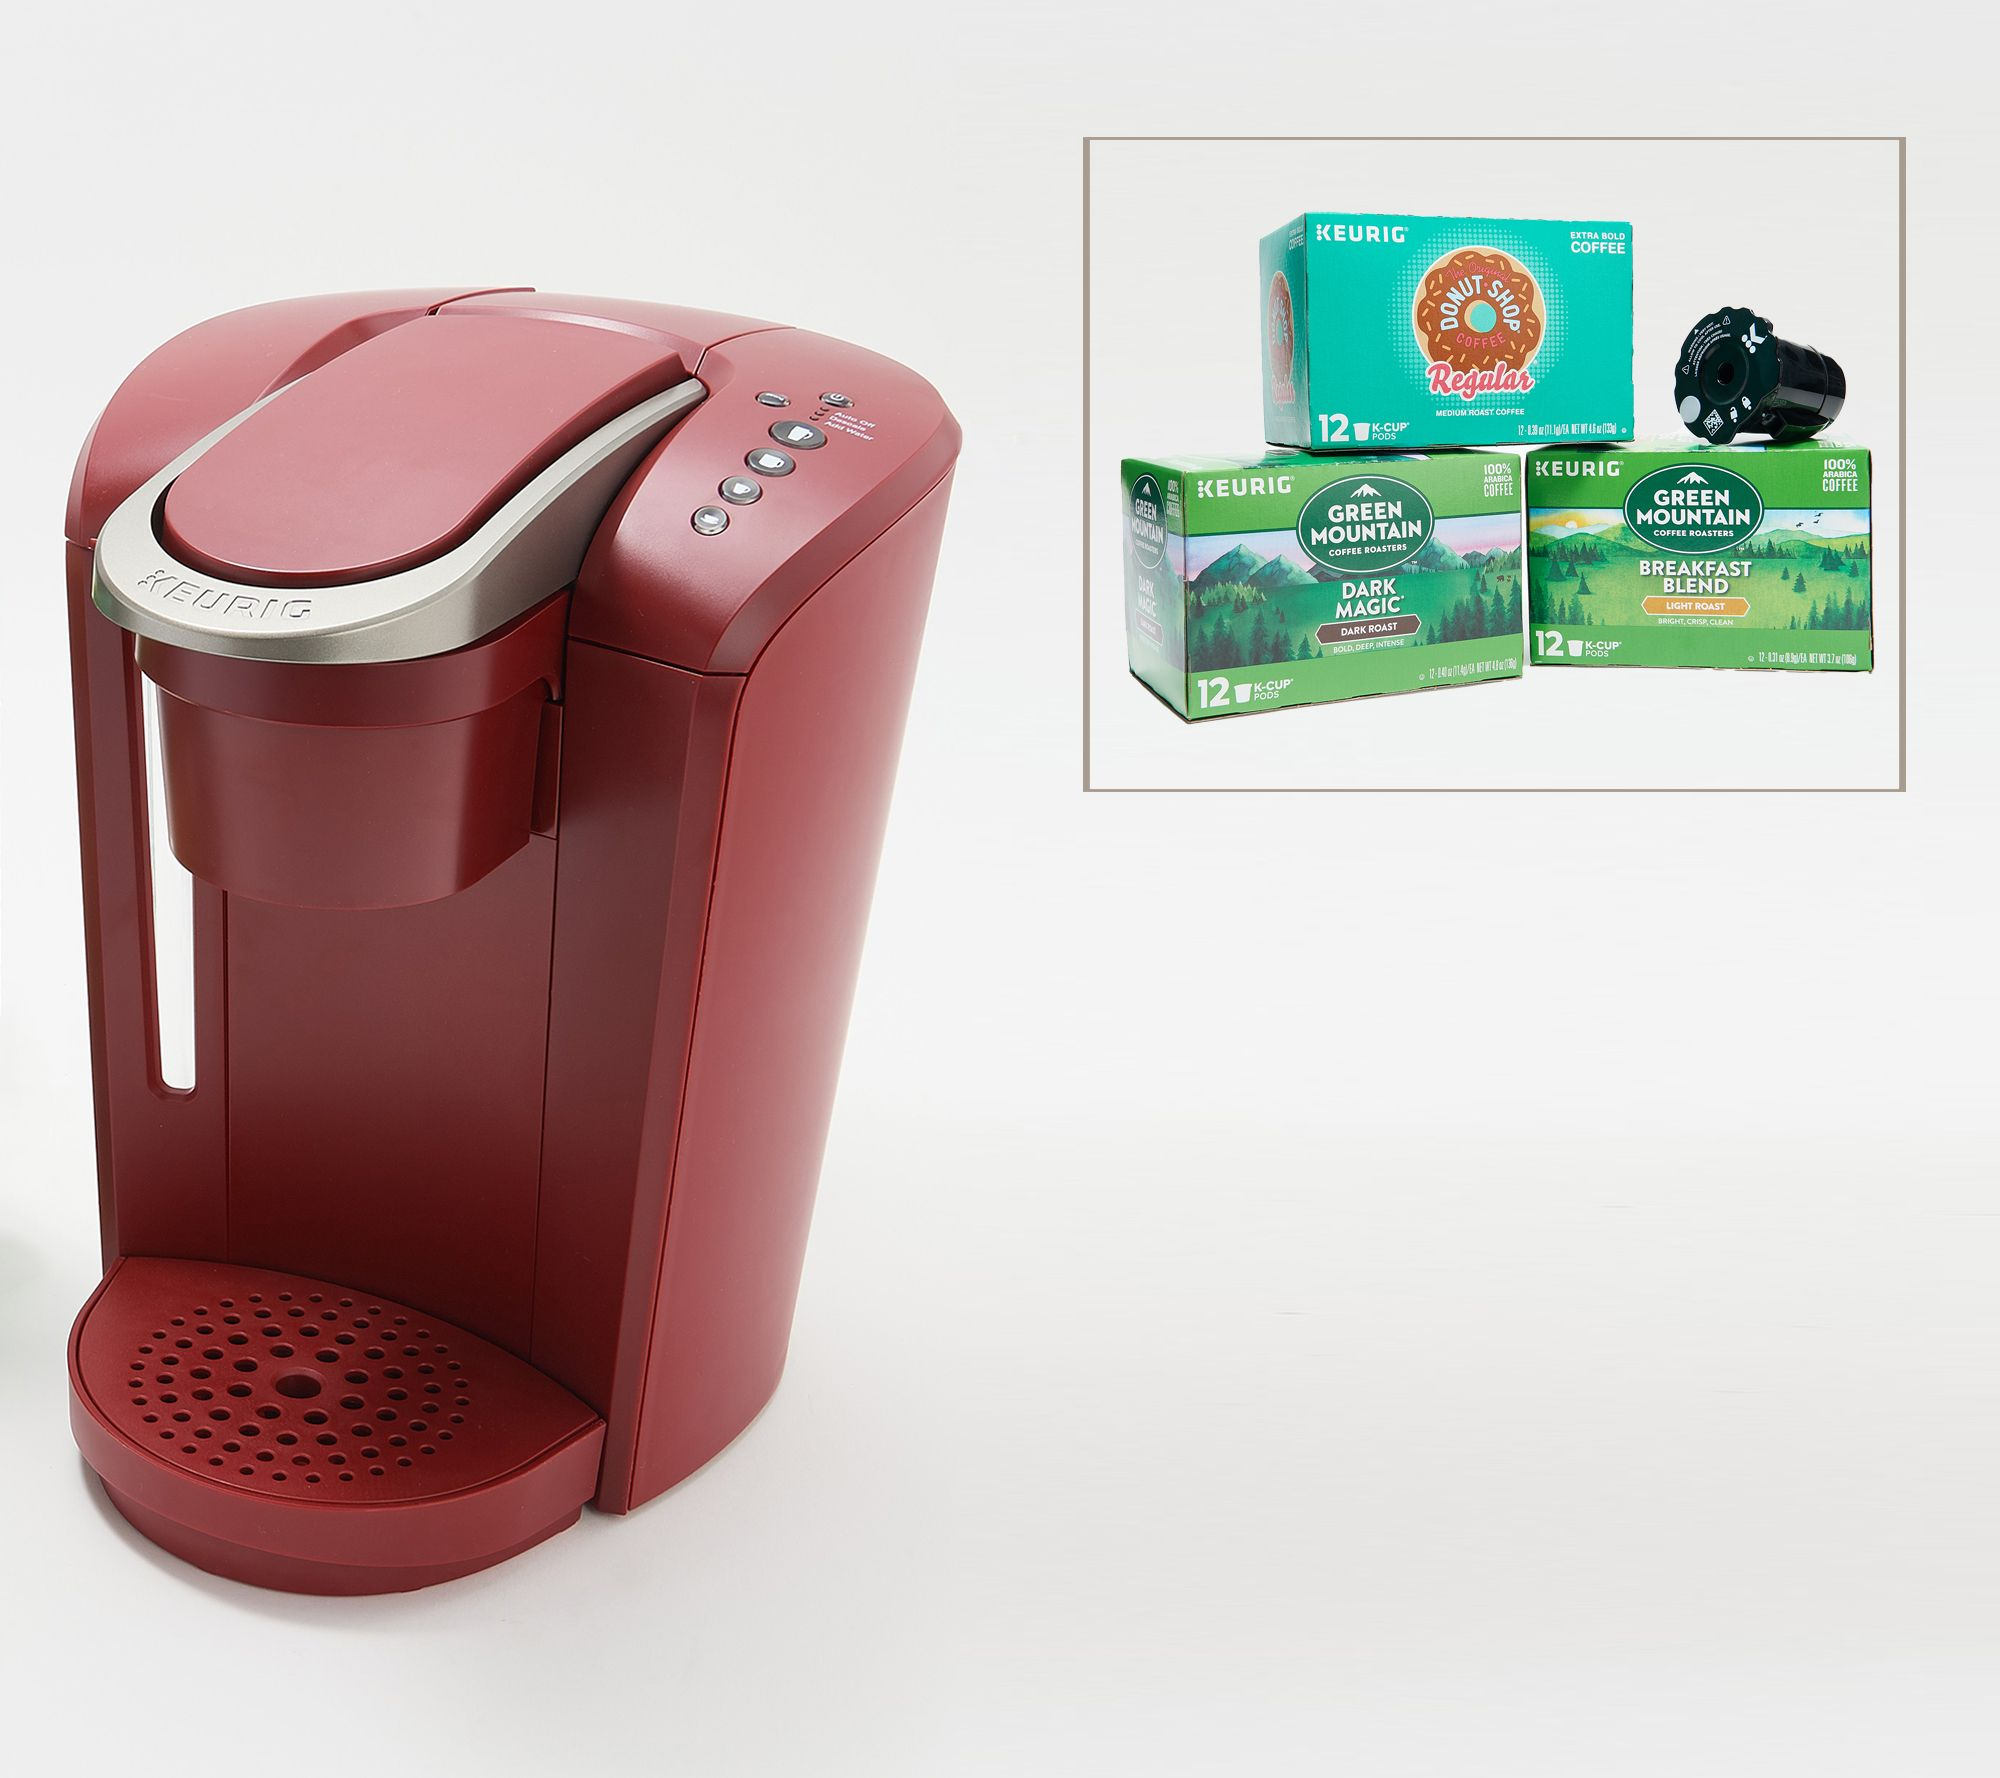 Start your day right with a Keurig coffee maker